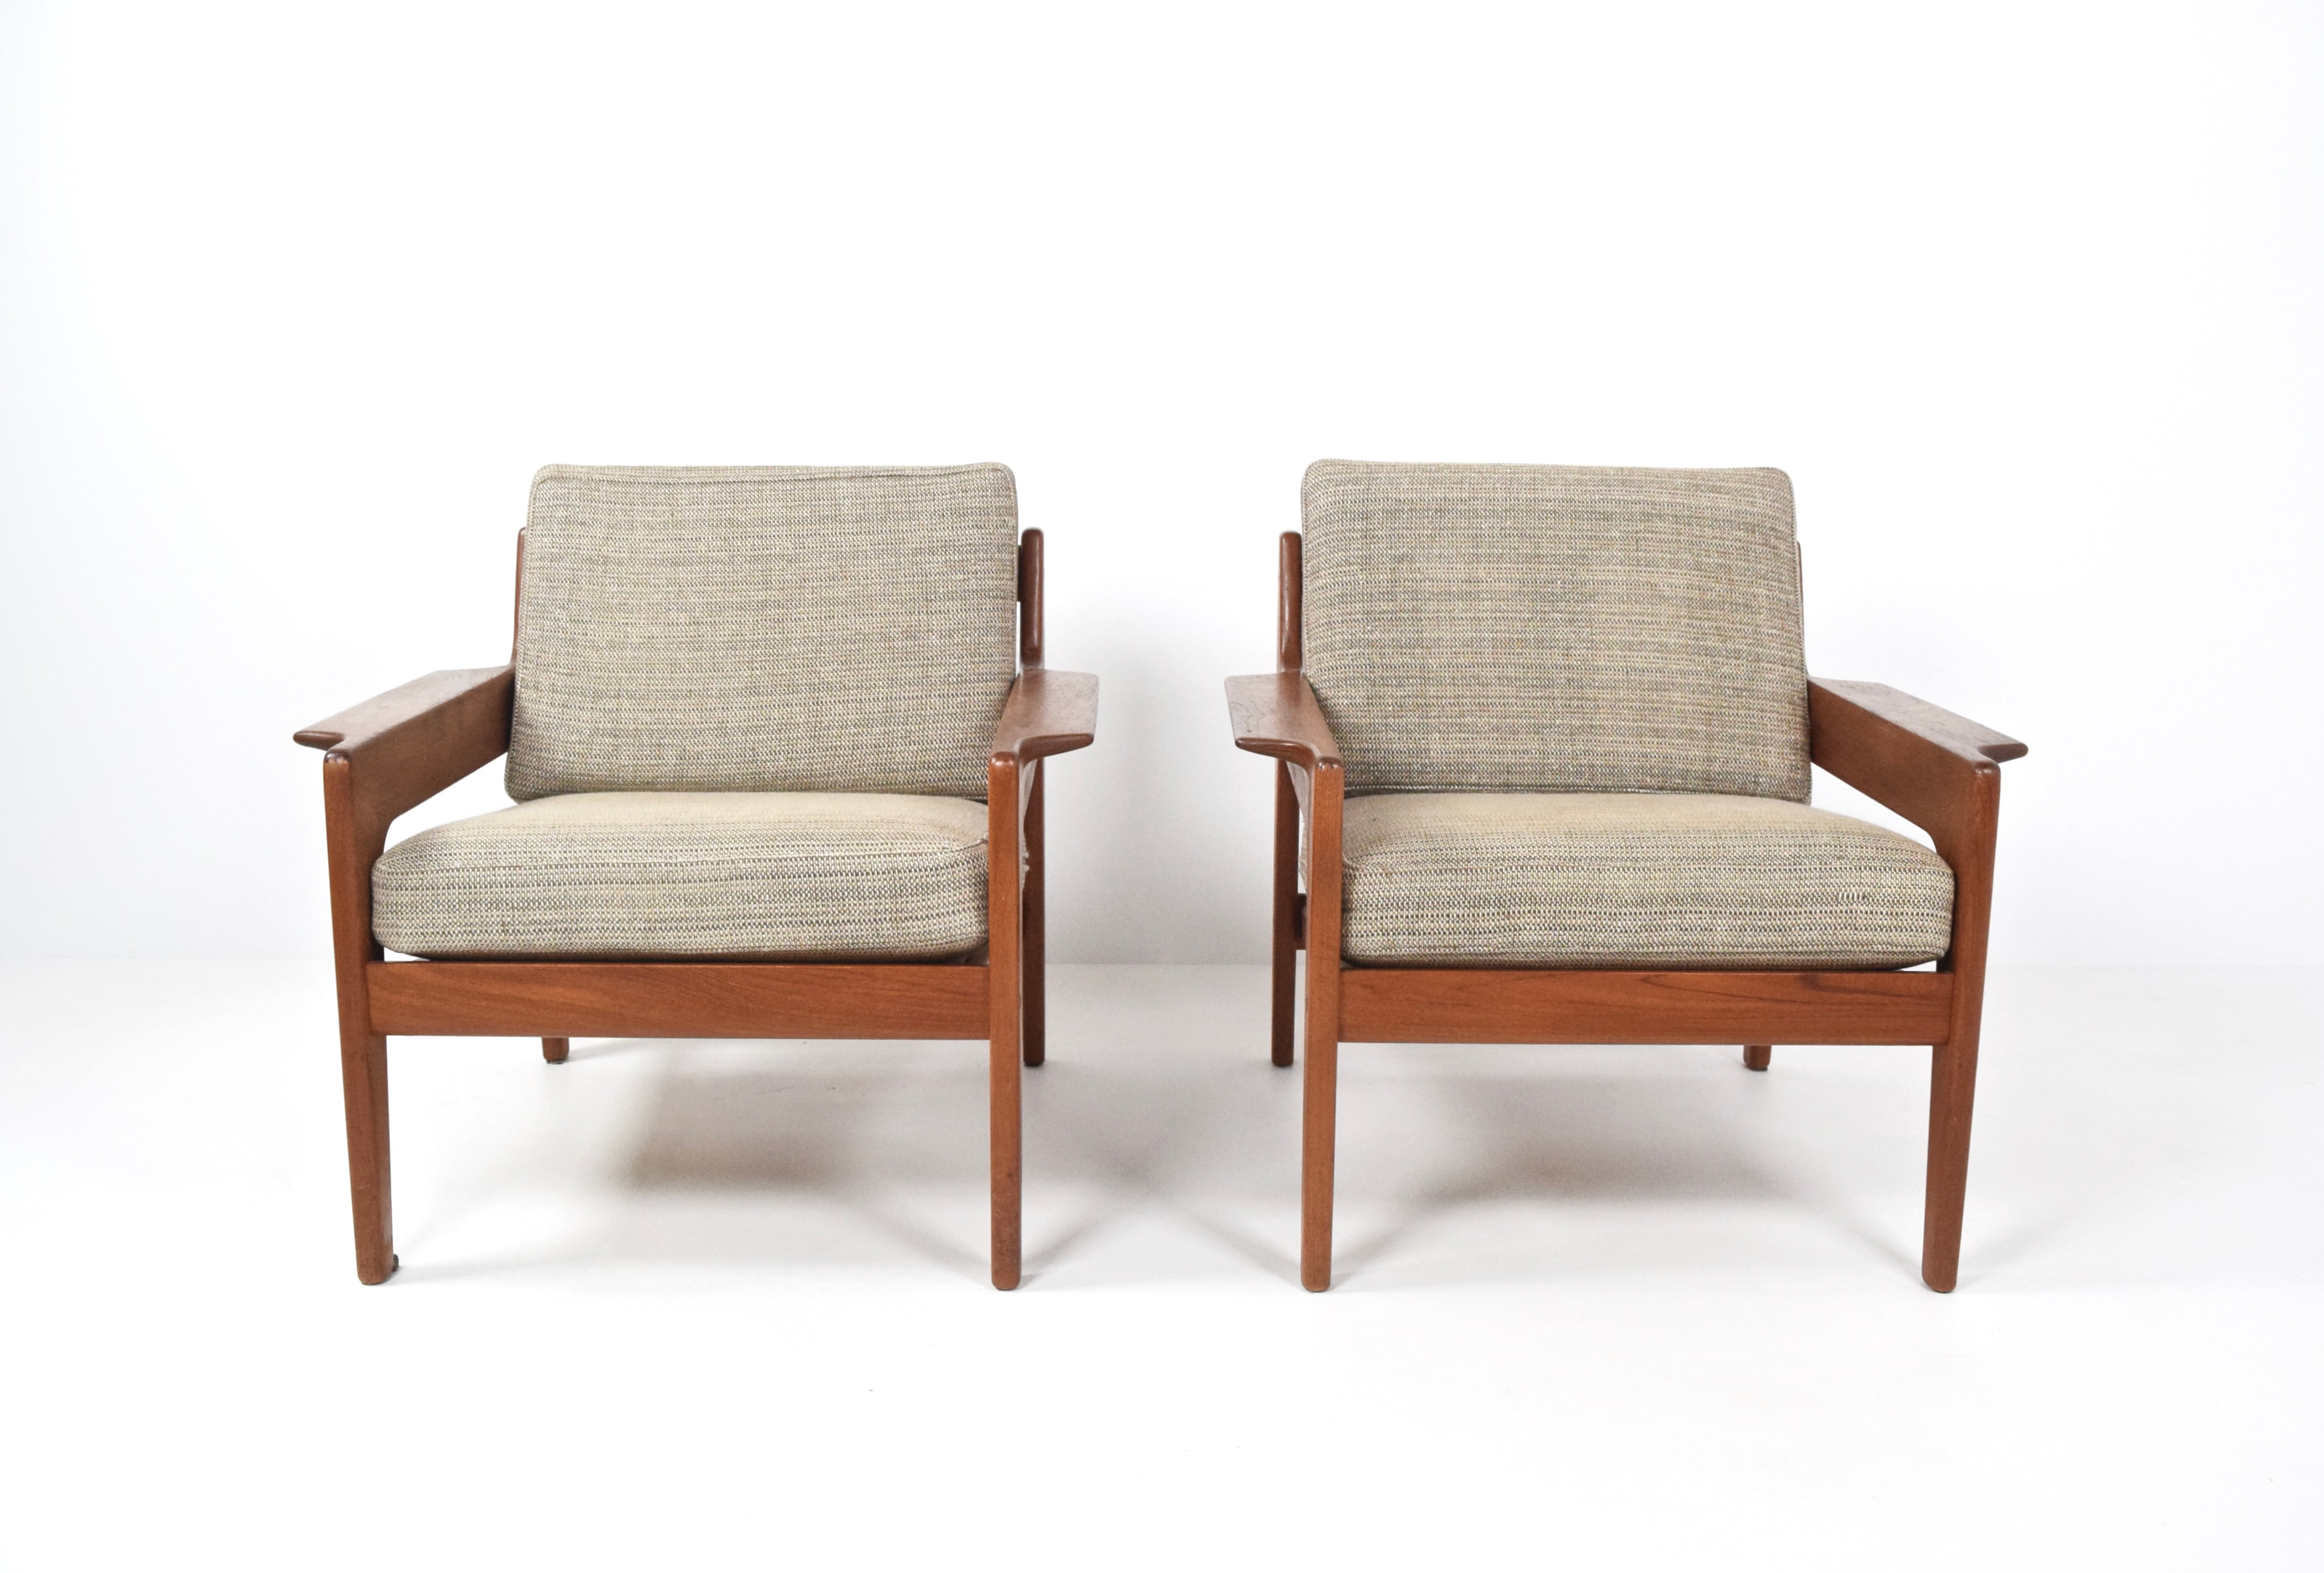 Set of Two Arne Wahl Iversen Lounge Chairs for Komfort